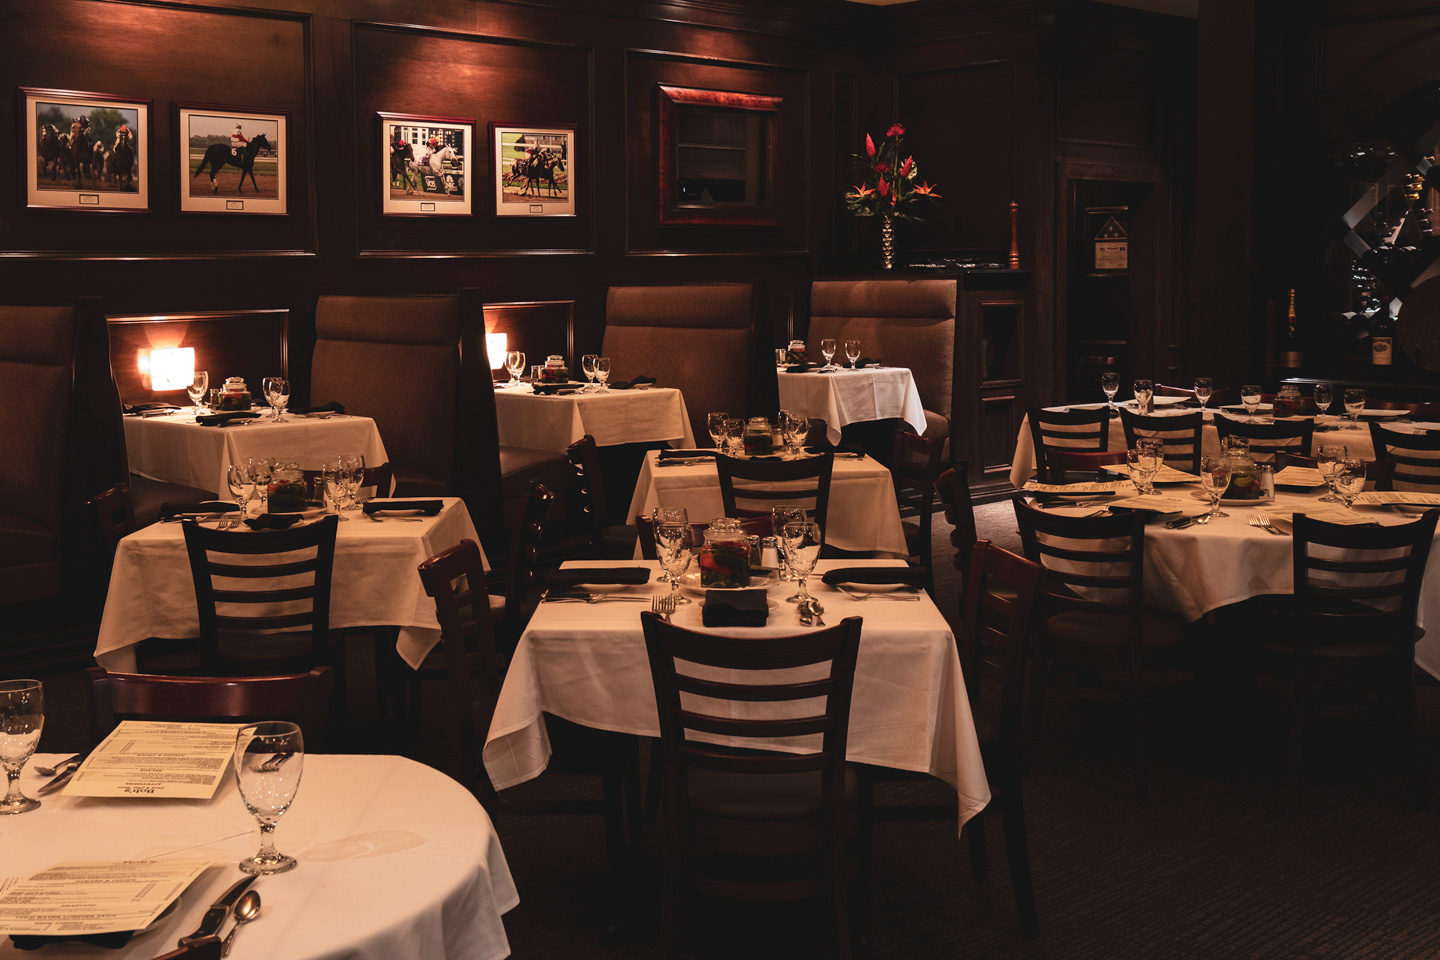 Bob's Steak & Chop House - Grapevine, TX (Dining Room)